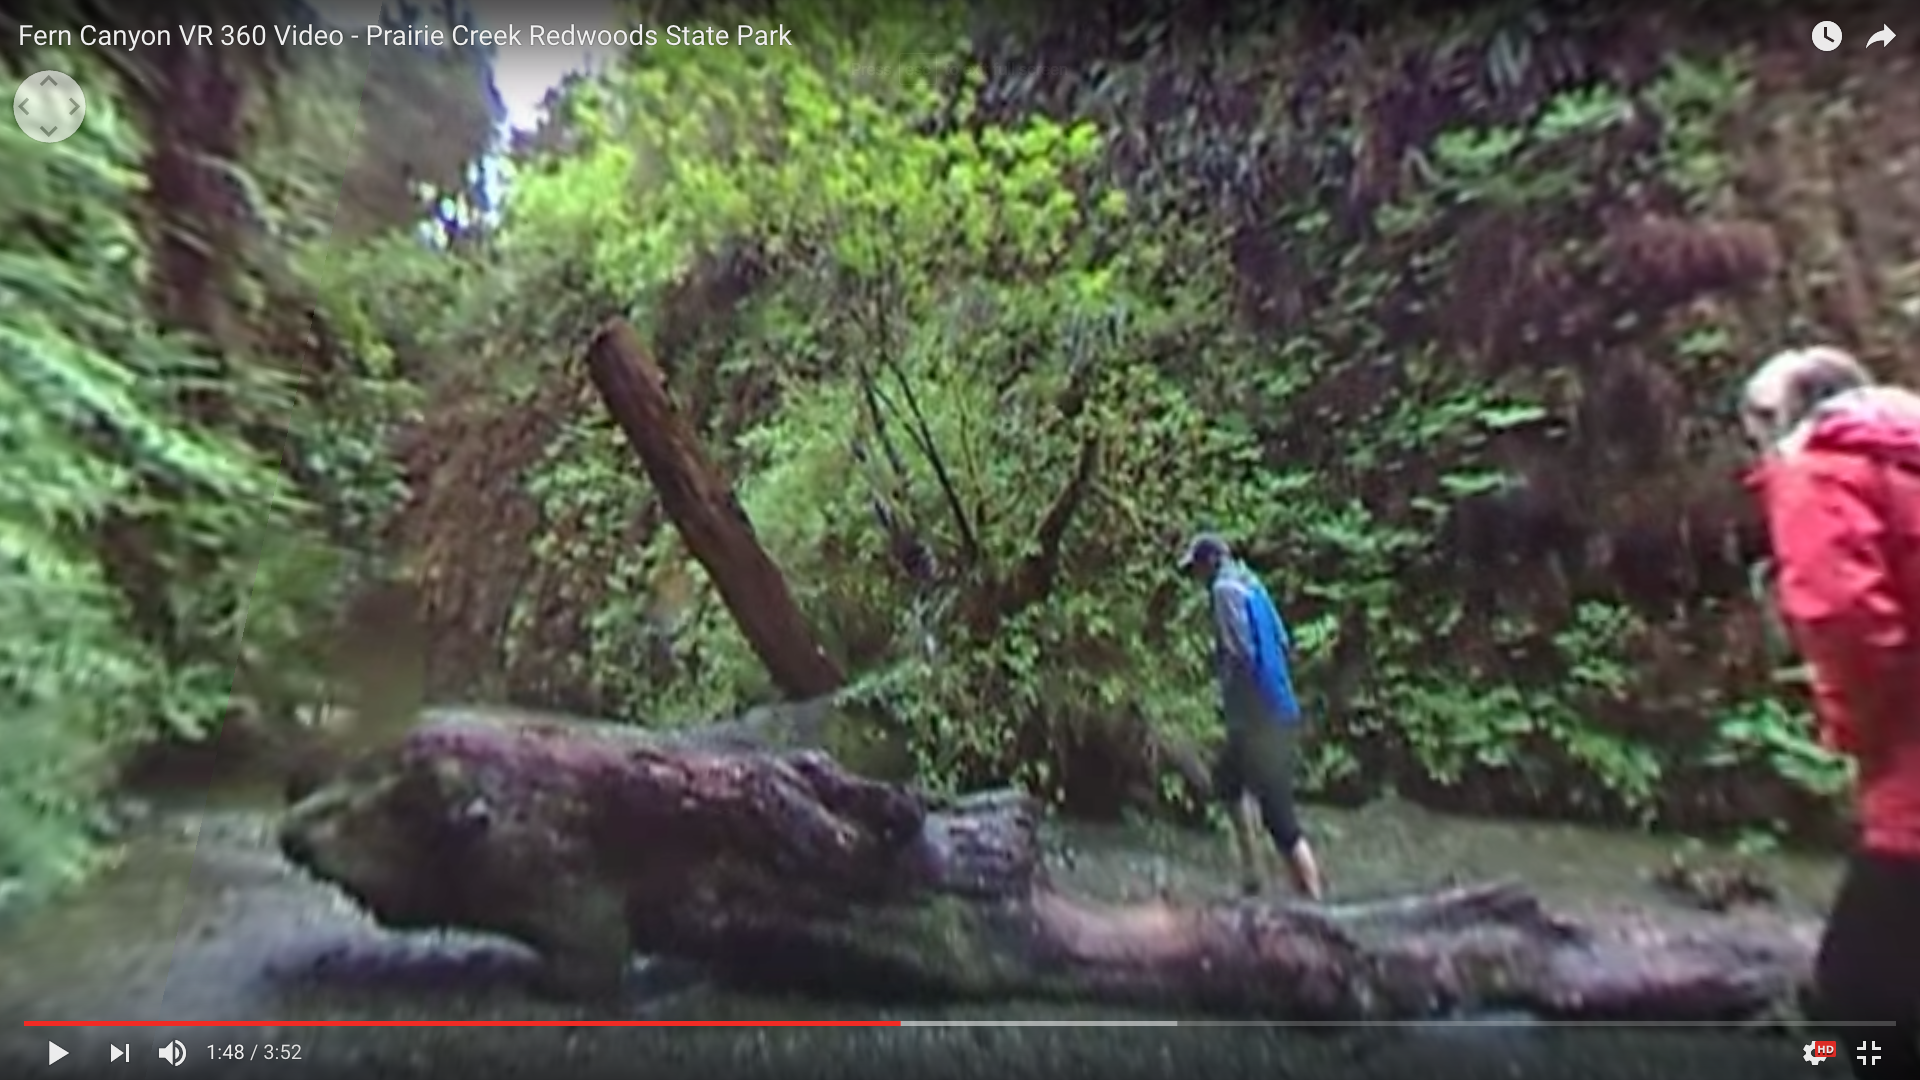 Fern Canyon 360 Video - Grant Olin